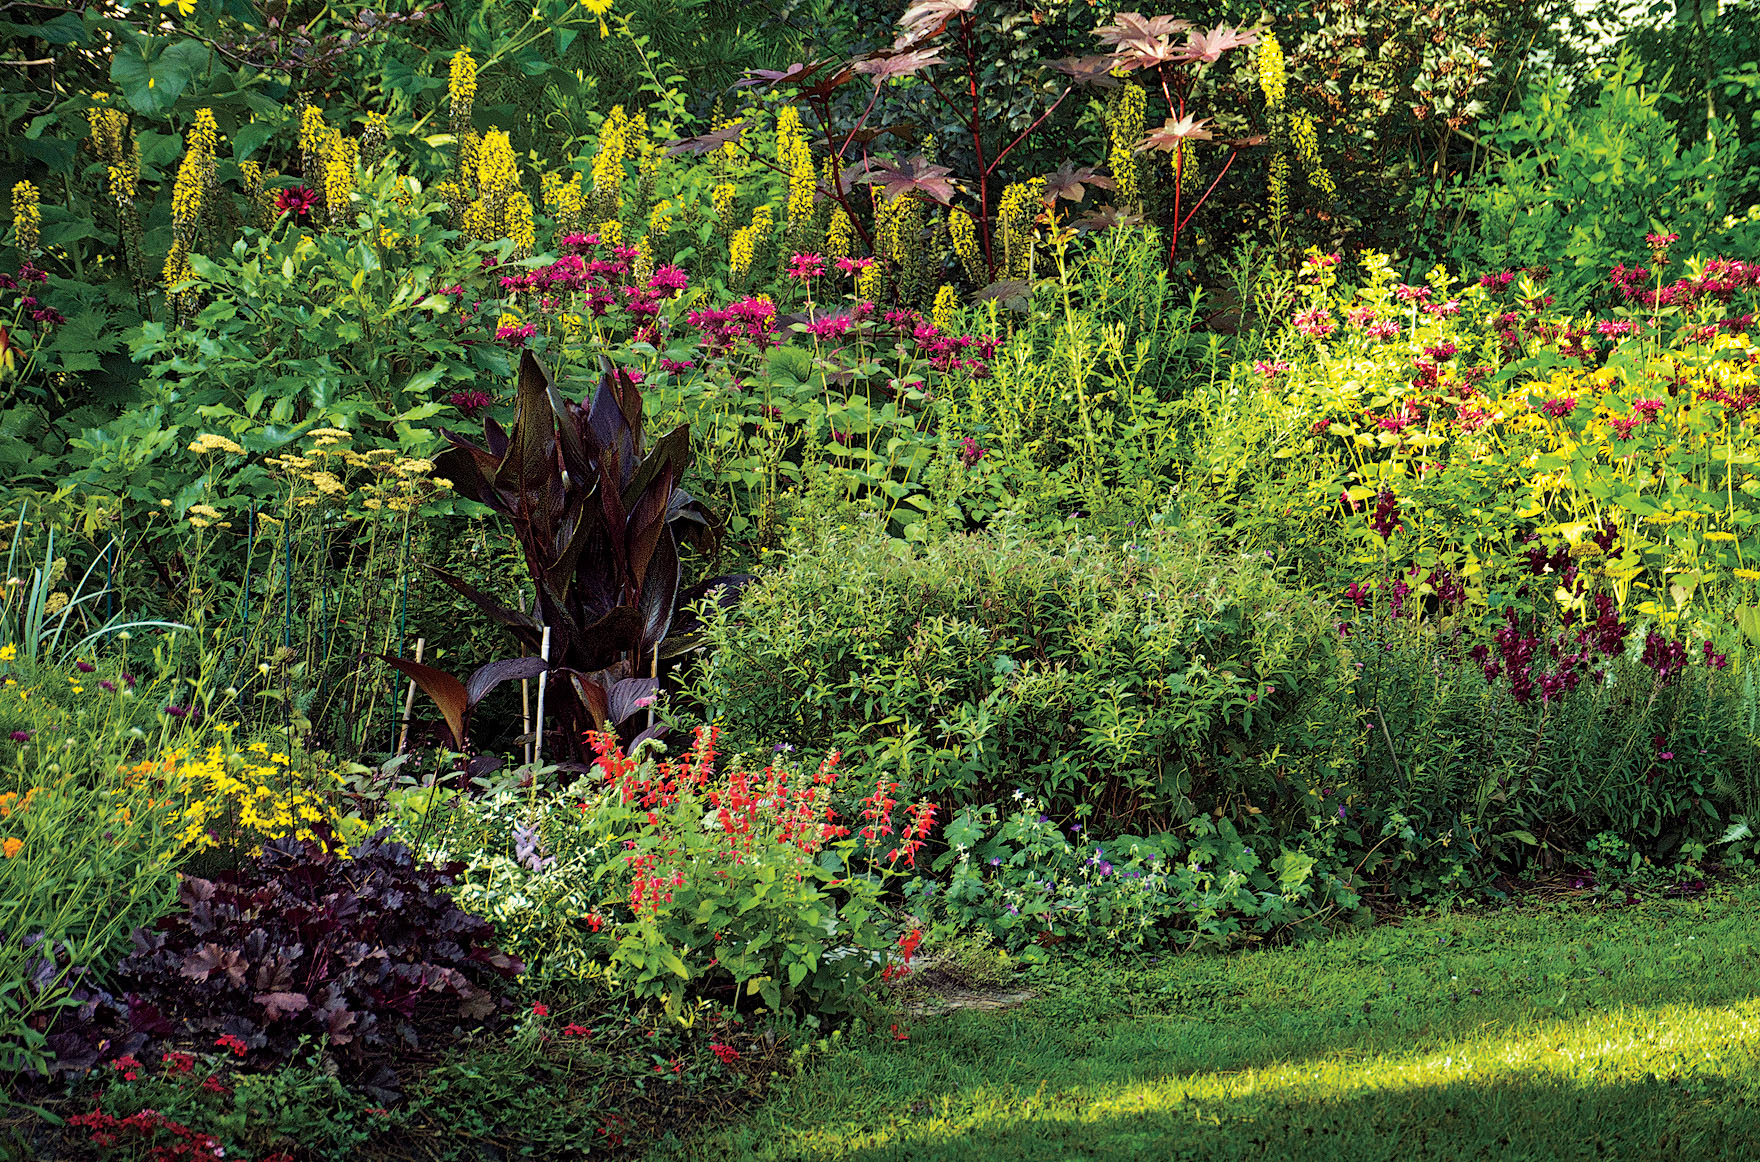 essay about gardening water garden ilona bell cultivates a  ilona bell cultivates a literary garden in the berkshires the hot border in summer